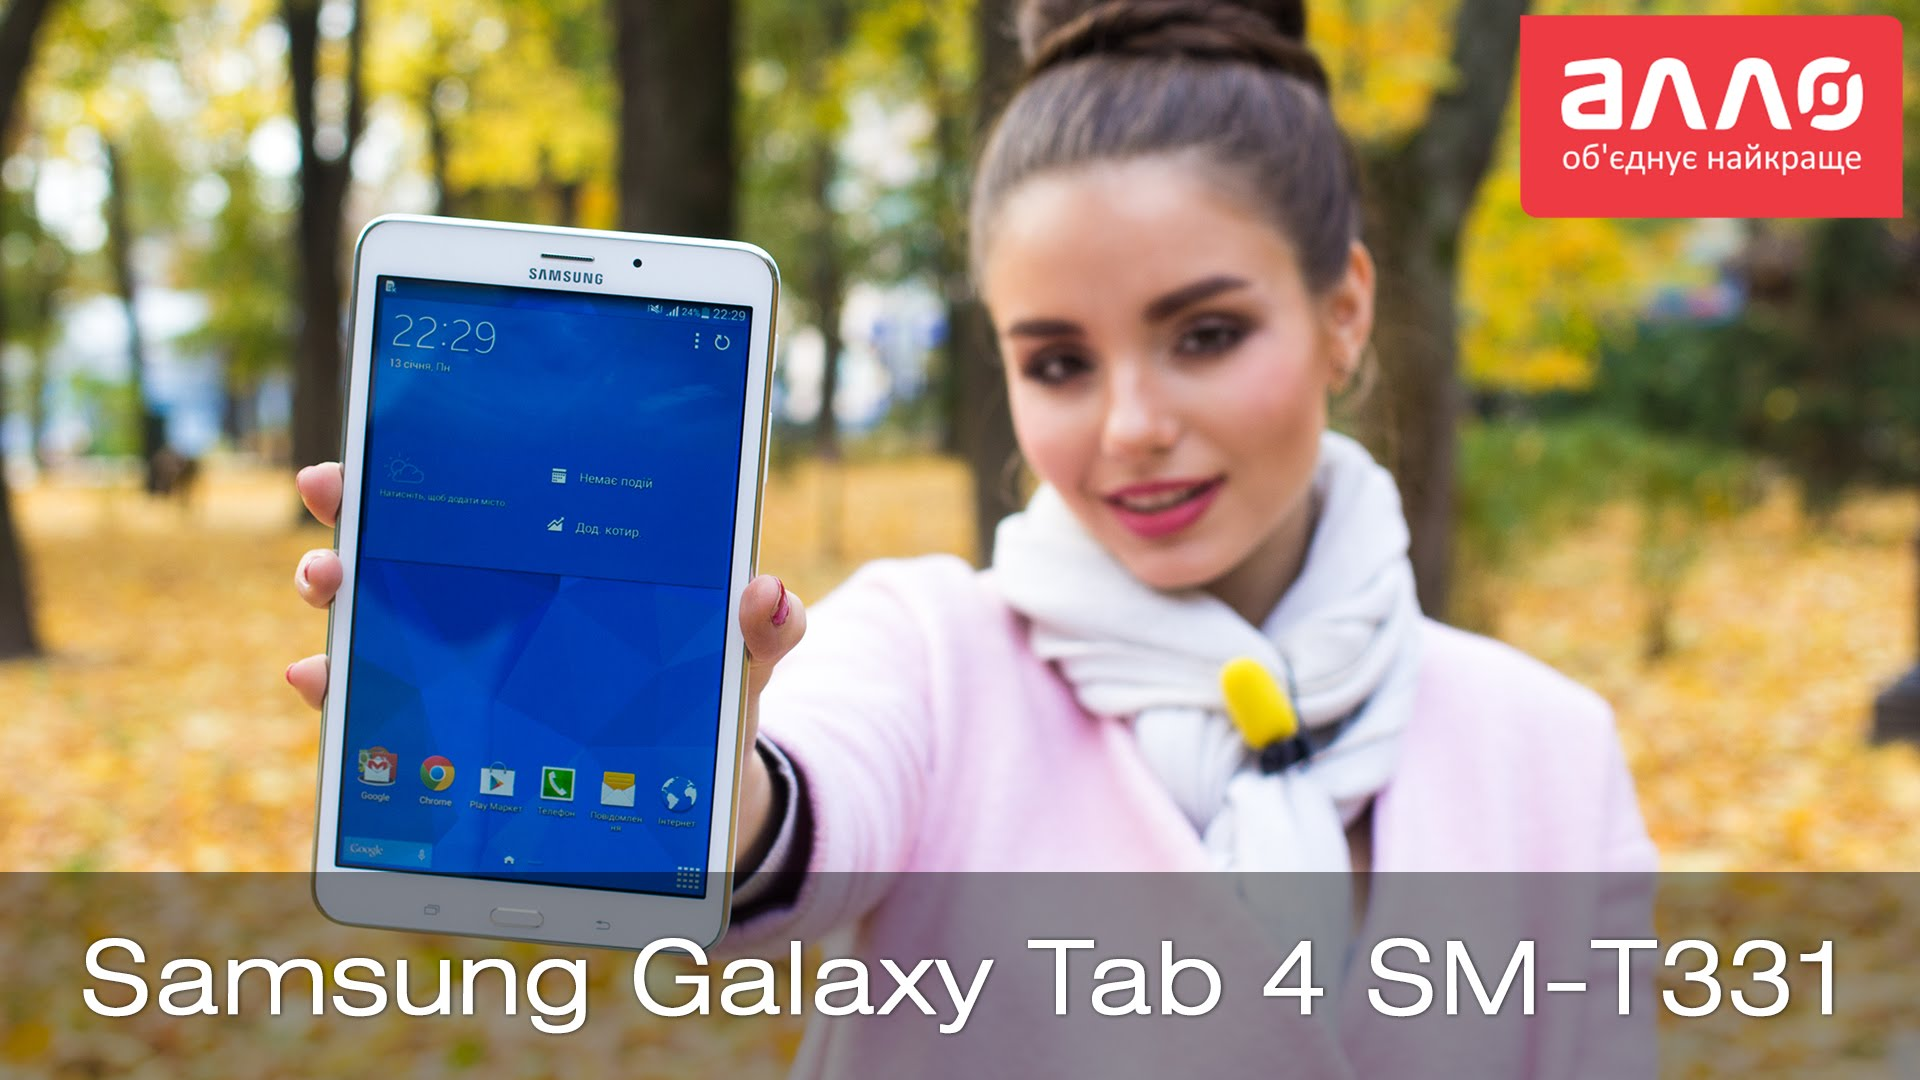 How to root Samsung Galaxy Tab 4 8 0 SM-T331 on Android 5 1